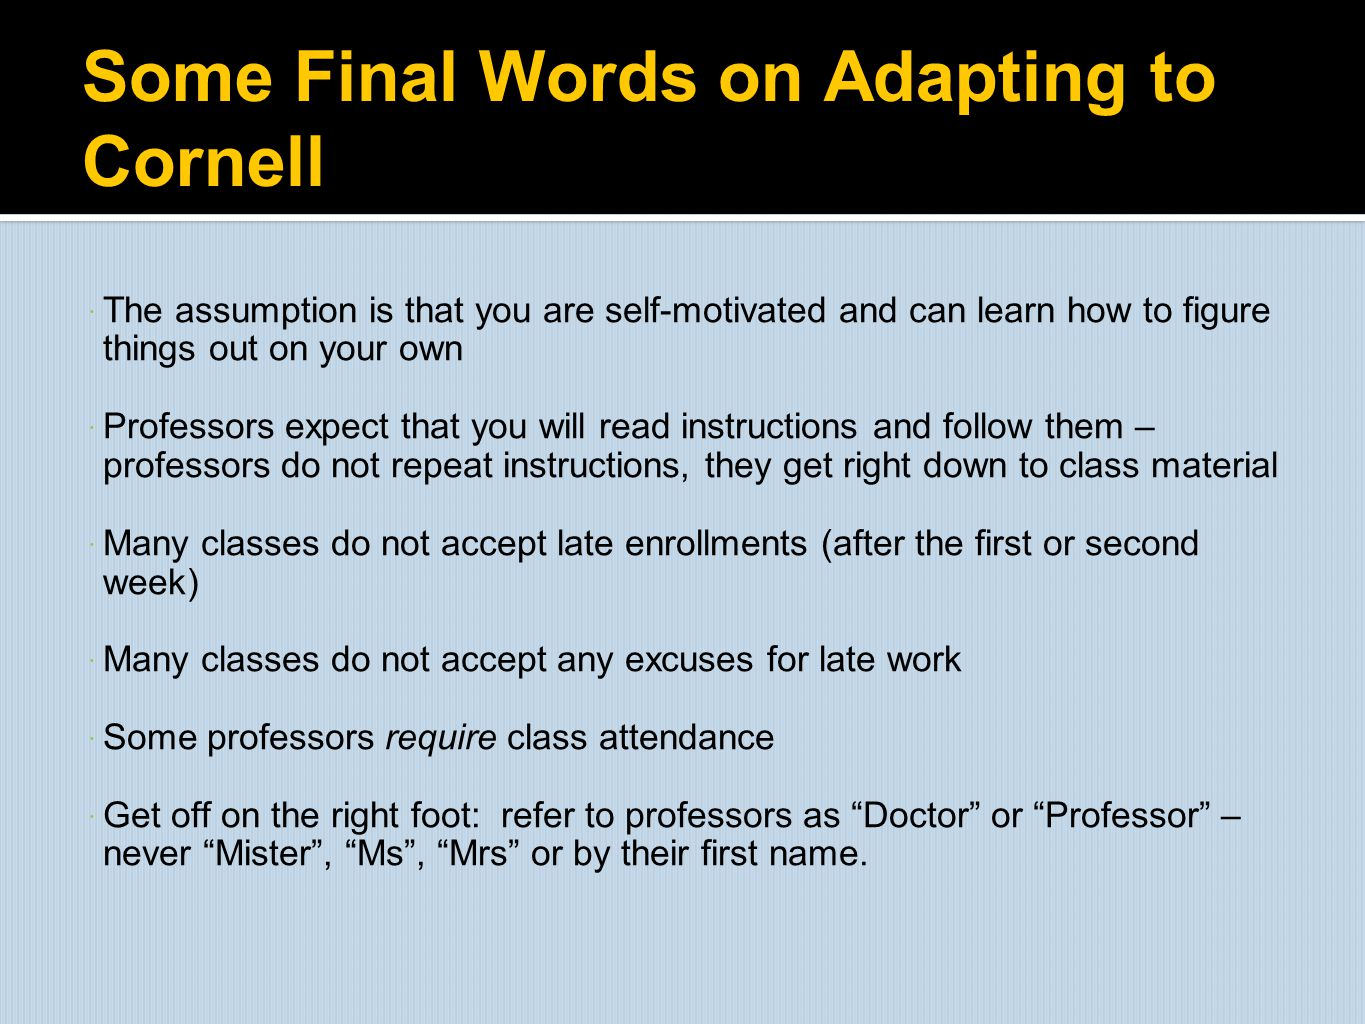 Some Final Words on Adapting to Cornell